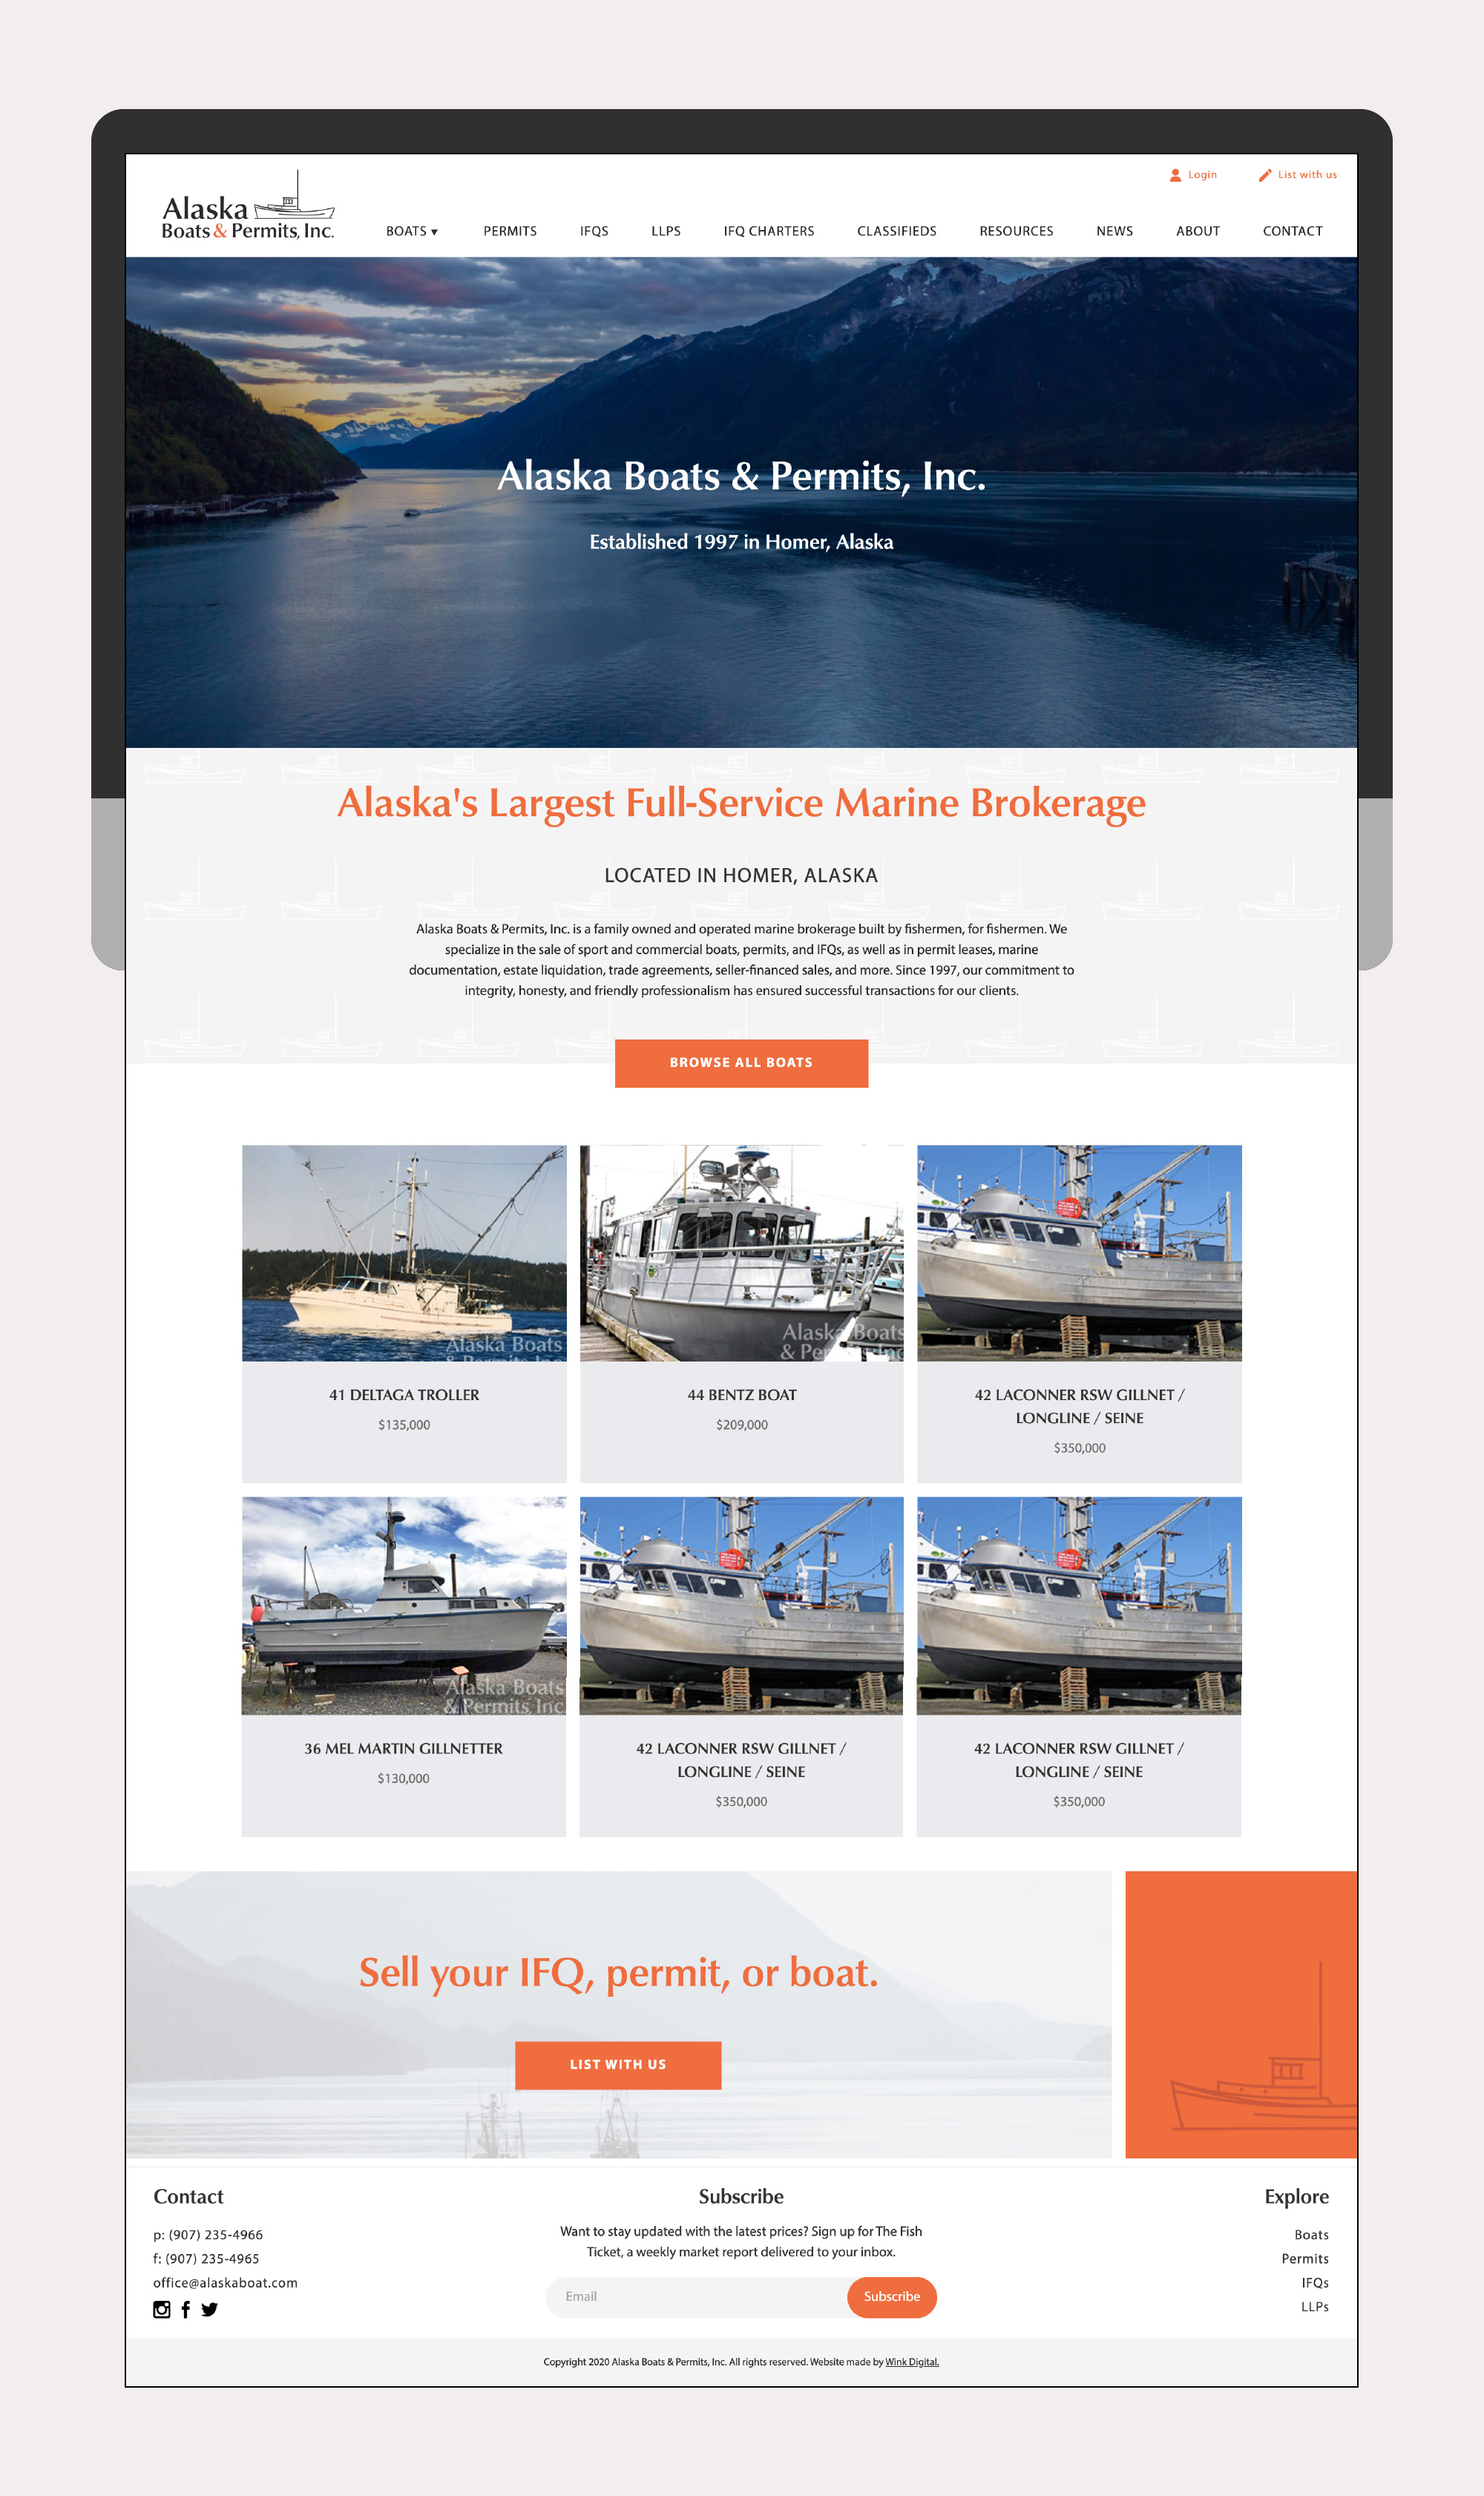 Alaska Boats & Permits by Wink Digital